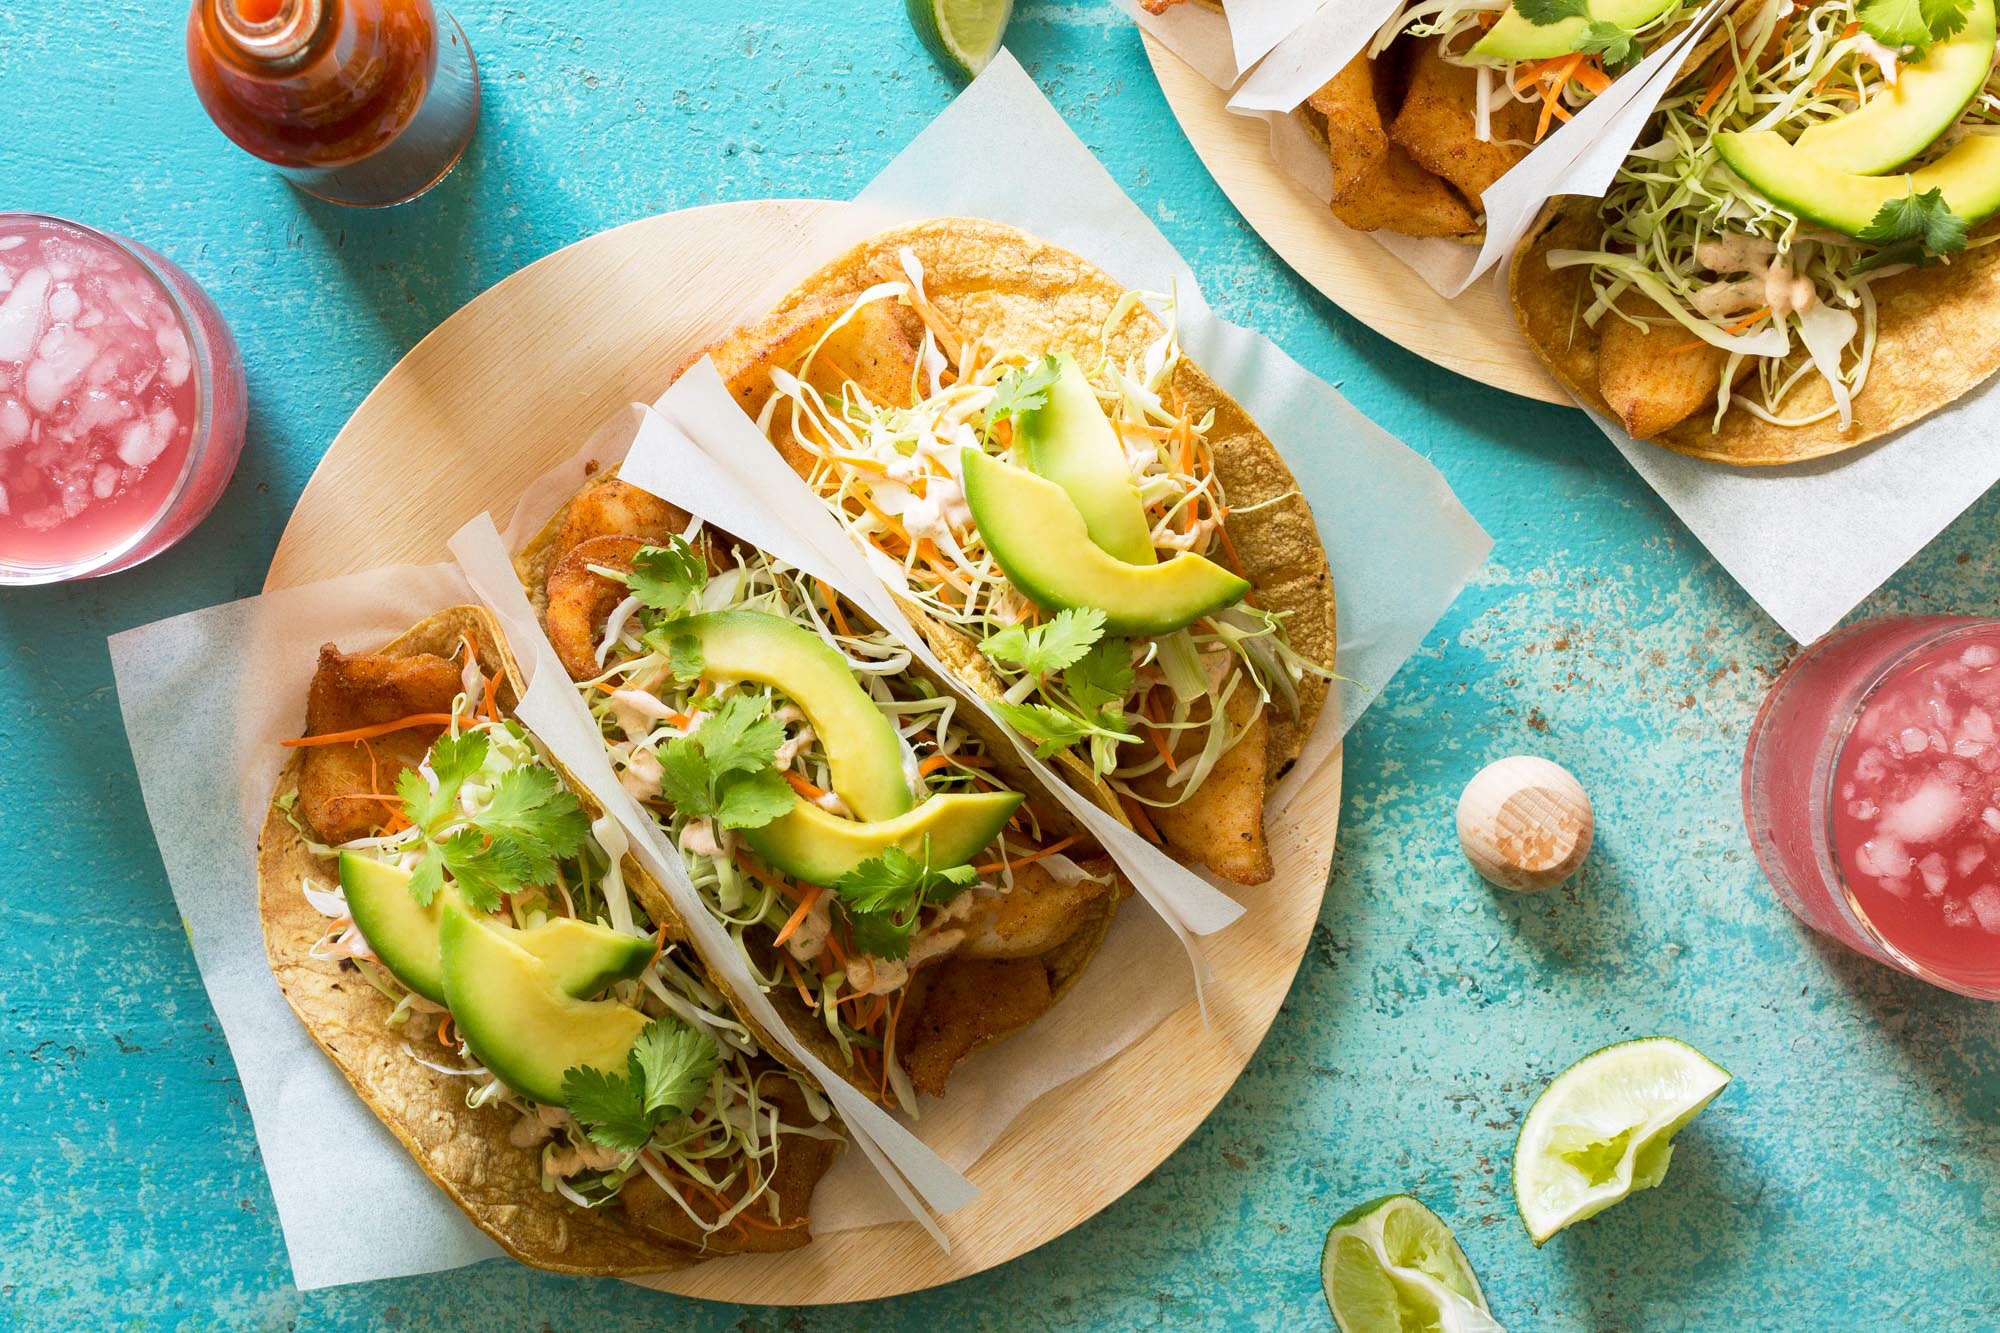 S119_SoCal-Fish-Tacos-Avocado-Cabbage-Slaw_Menu-Page.jpg